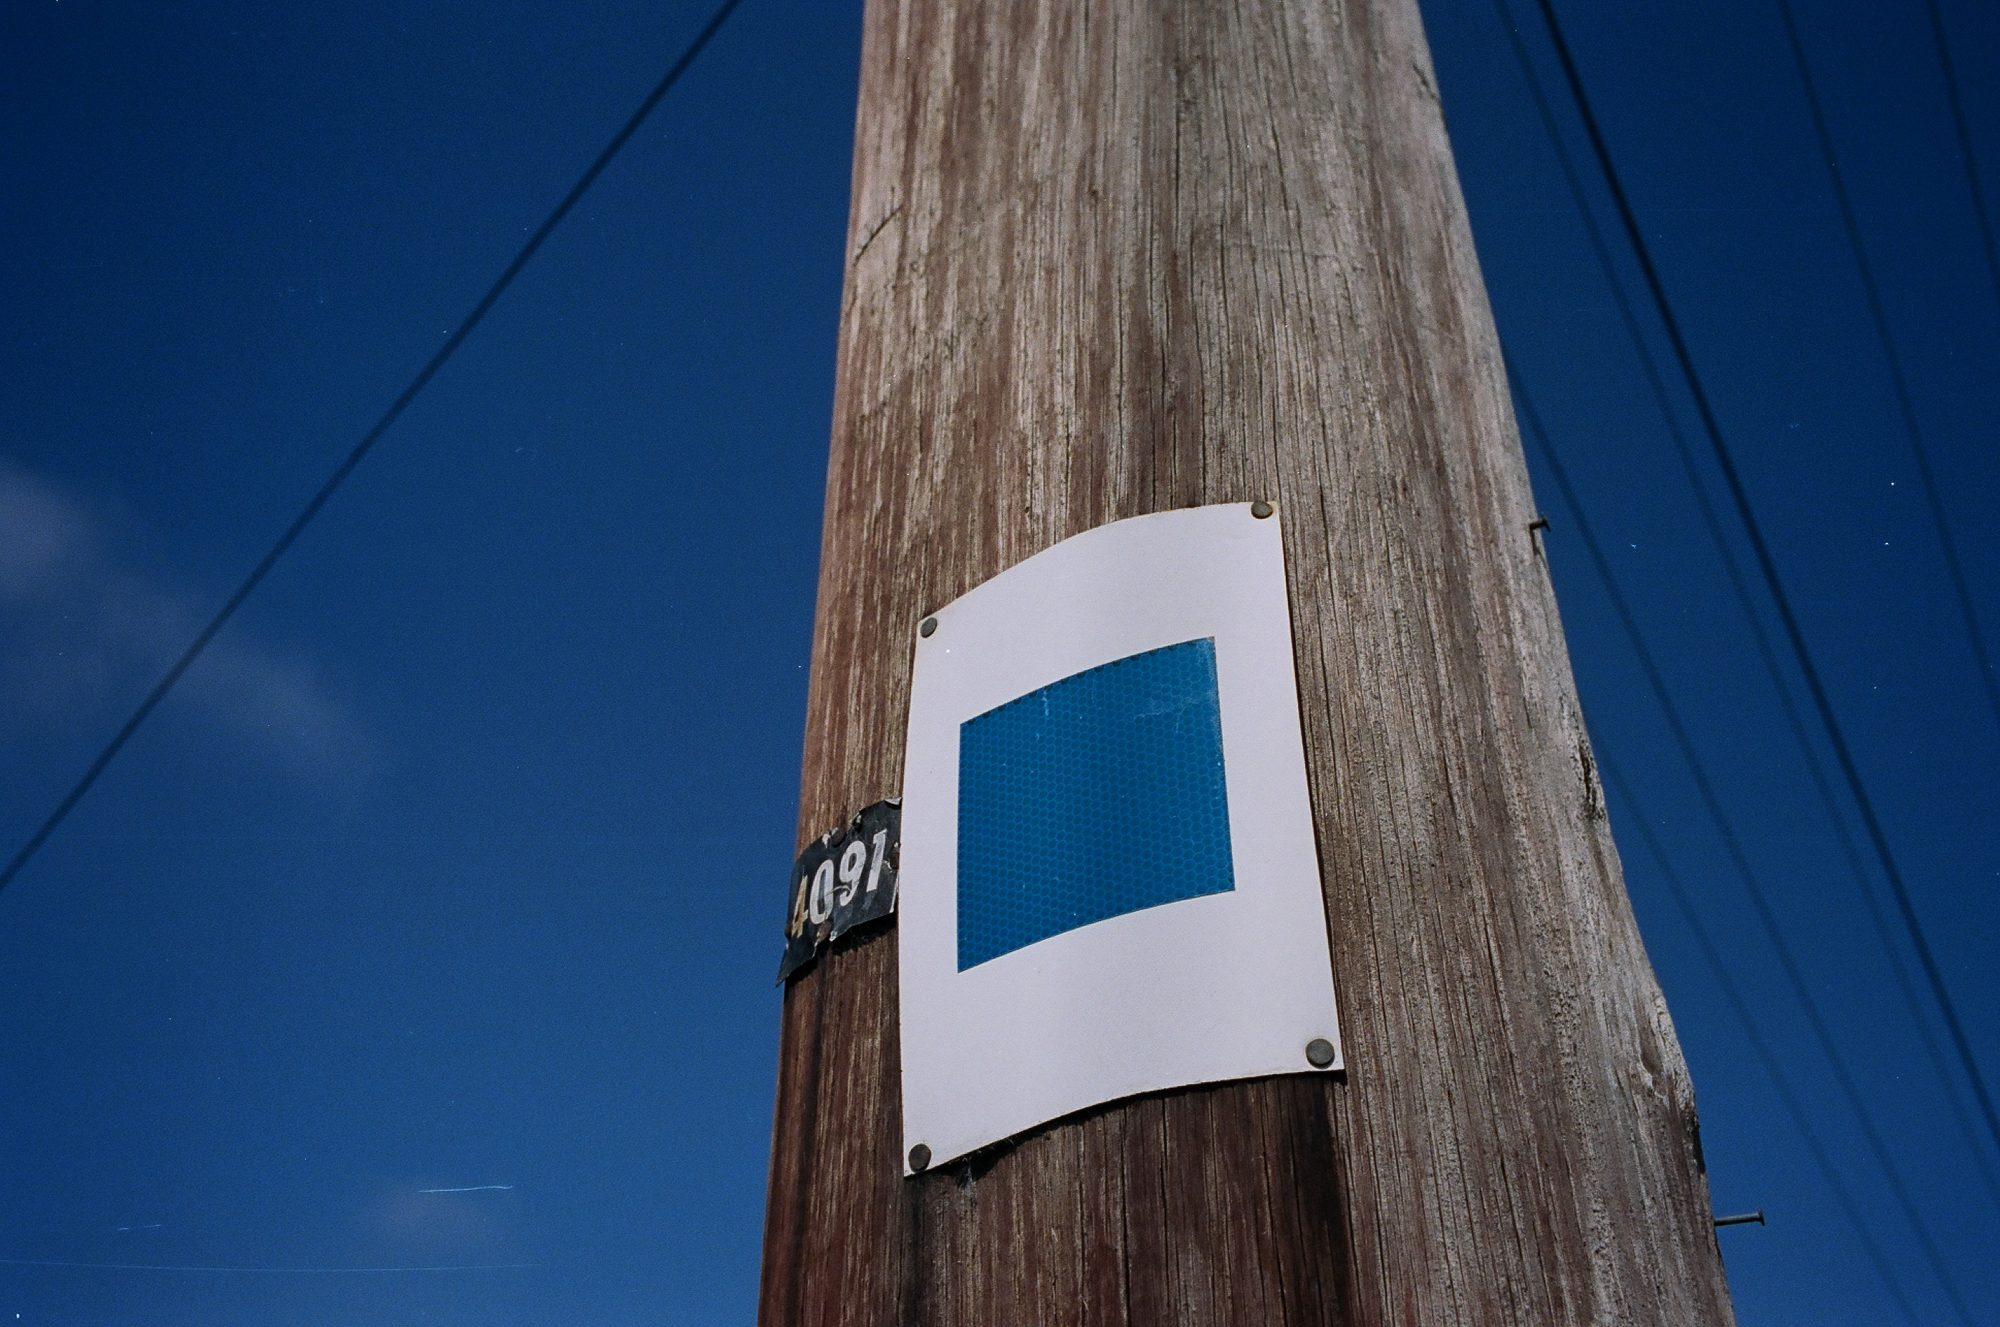 Blue square against blue sky. Surreal, 2013